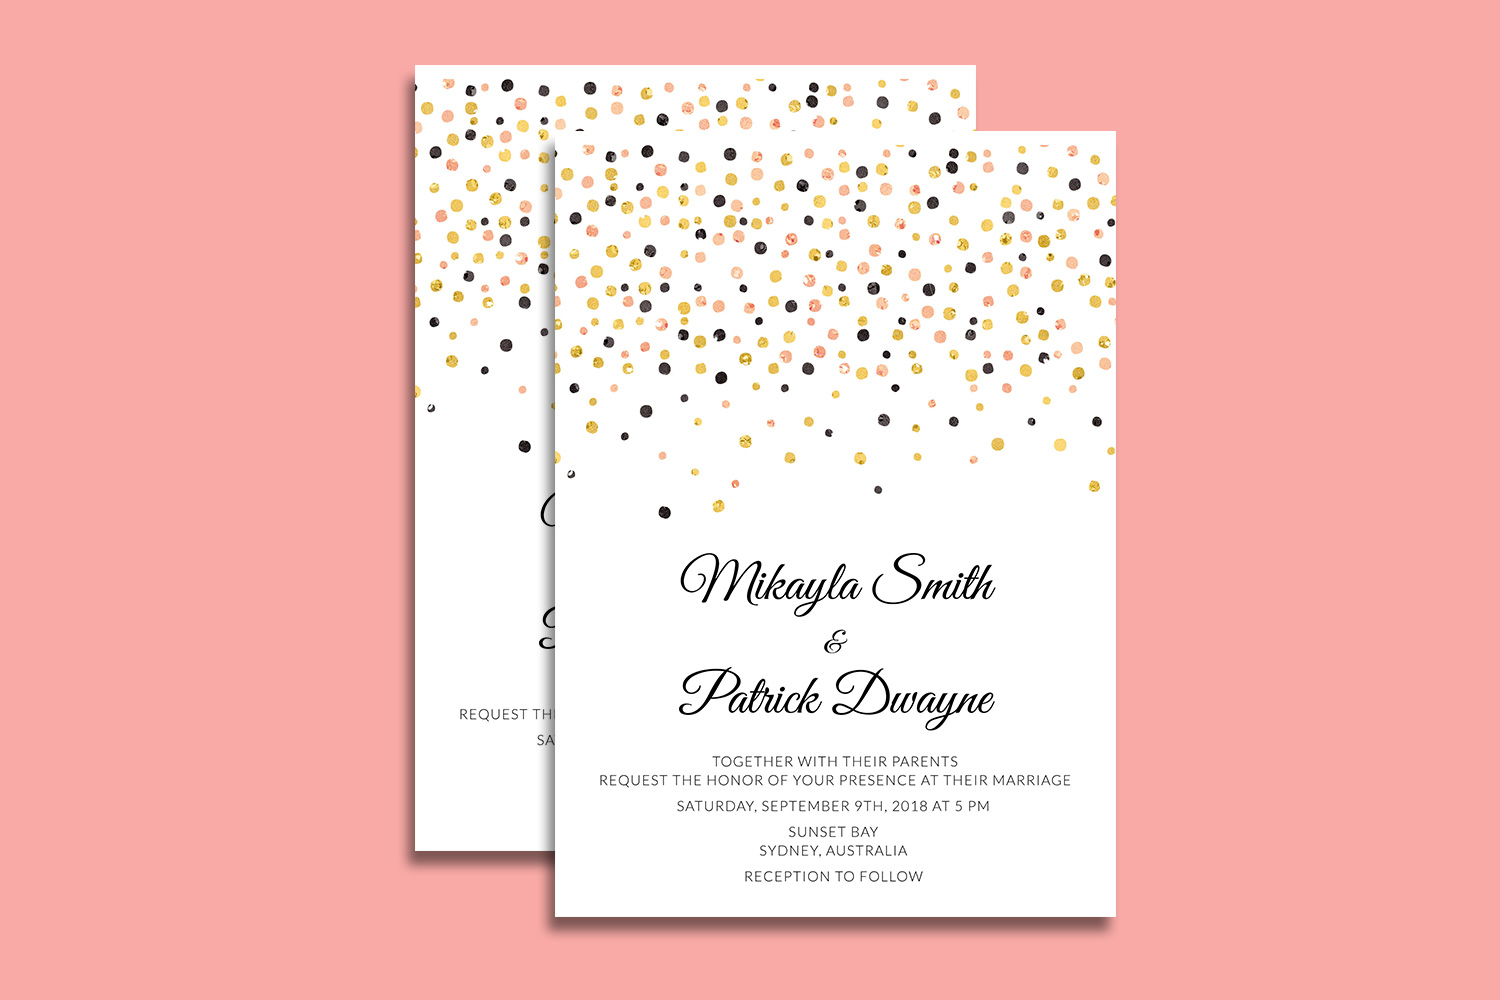 Wedding Invitation Ideas: Which Theme Fits Your Personalities ...